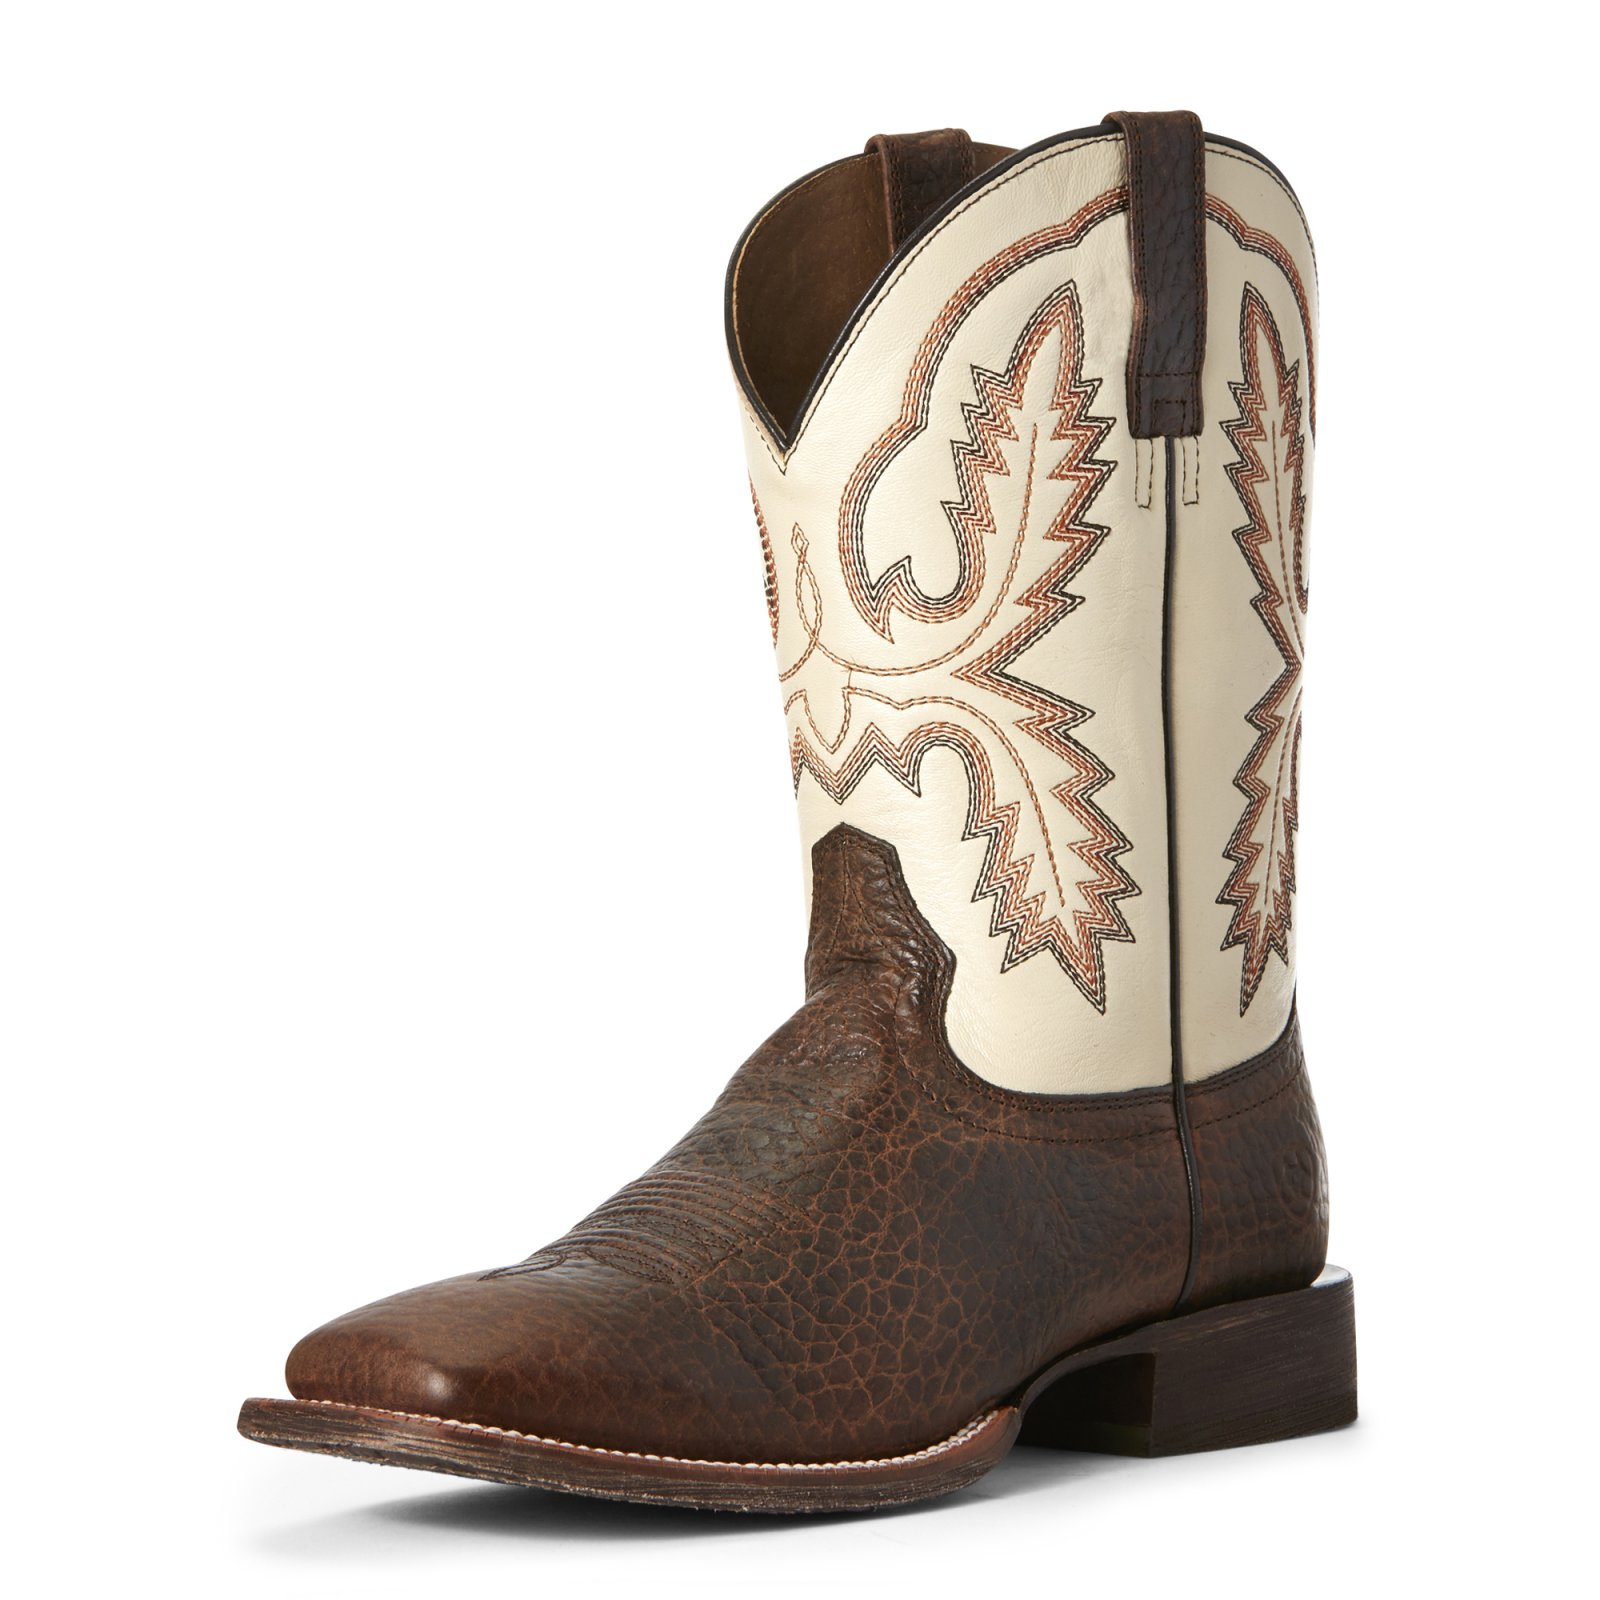 Circuit Dayworker Wide Square Toe Boot from Ariat